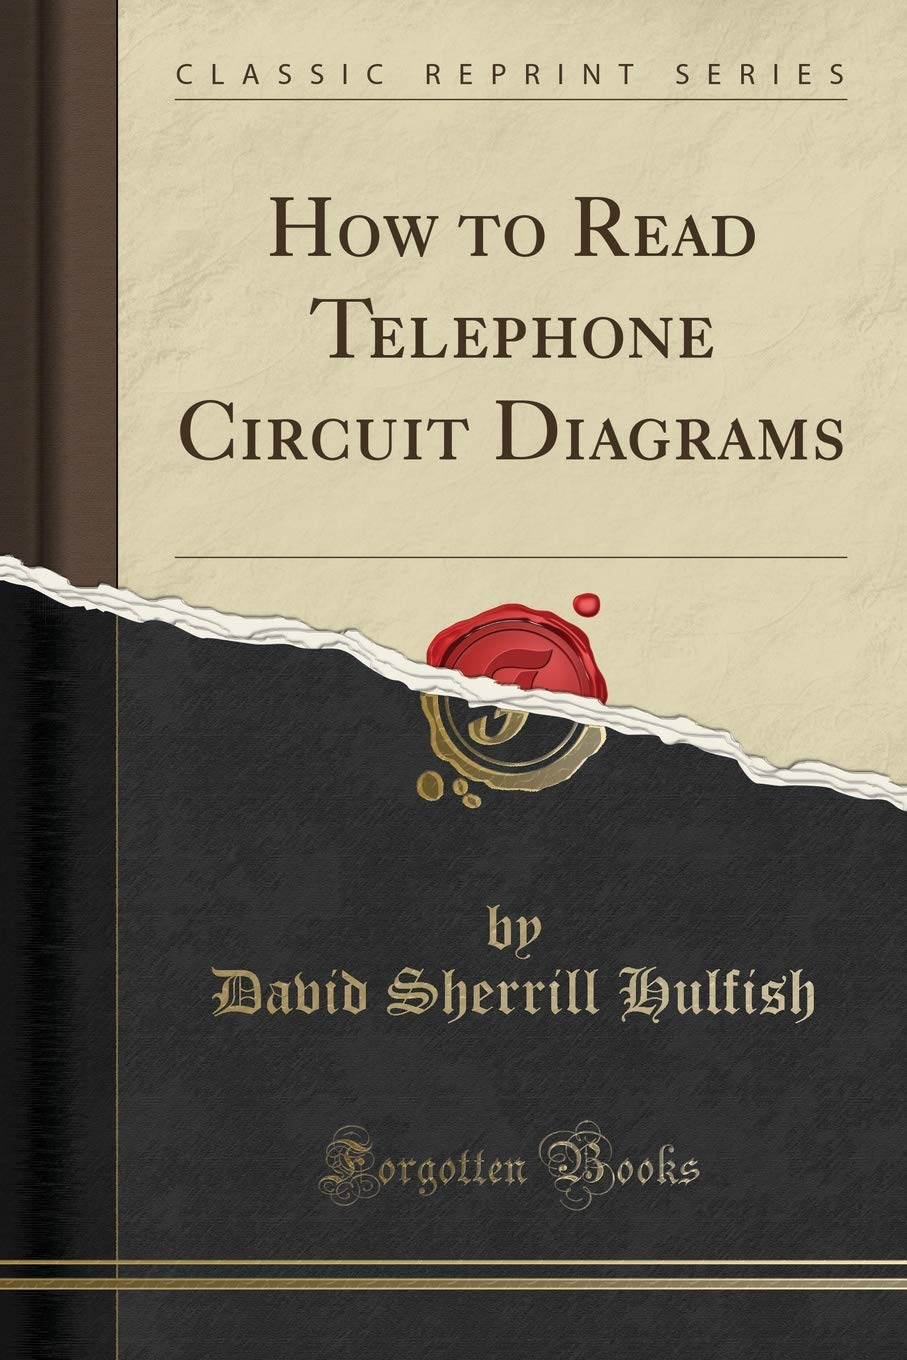 How to Read Telephone Circuit Diagrams Clic Reprint ... How To Read A Circuit Diagram on how do you read schematics, simple schematic diagram, harley davidson wiring diagram,